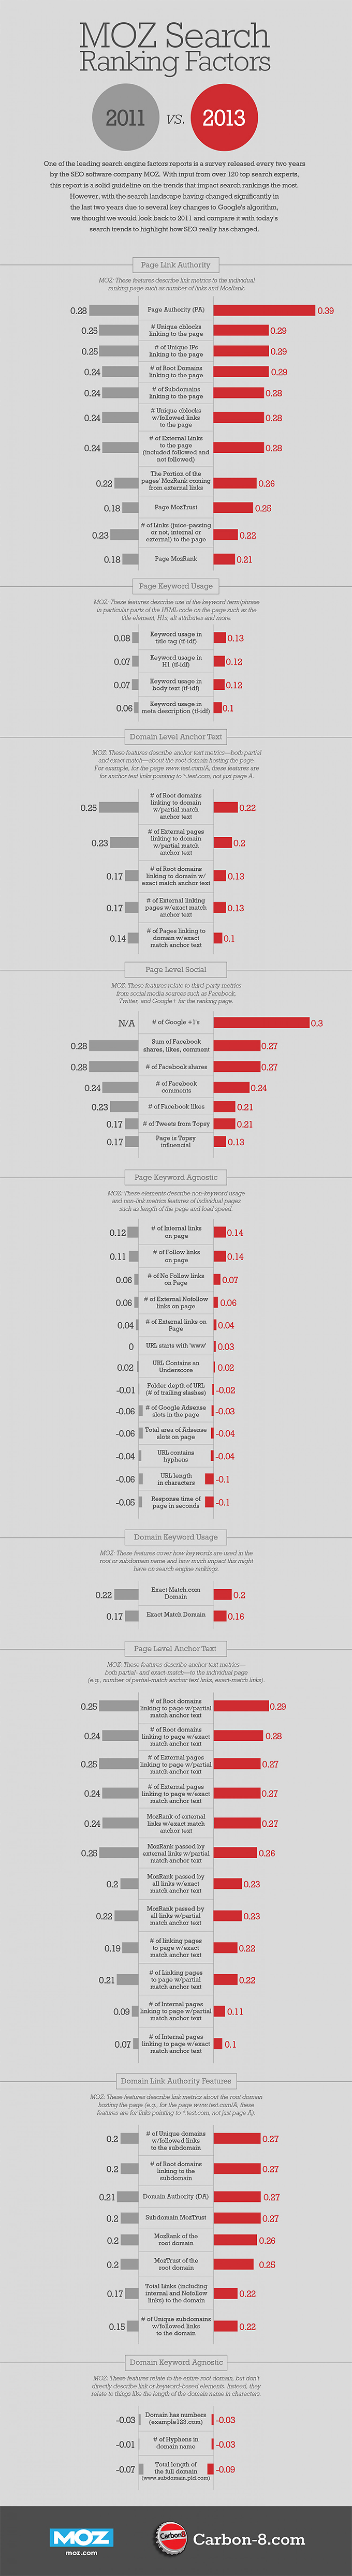 MOZ Search Ranking Factors: 2011 vs. 2013 Infographic